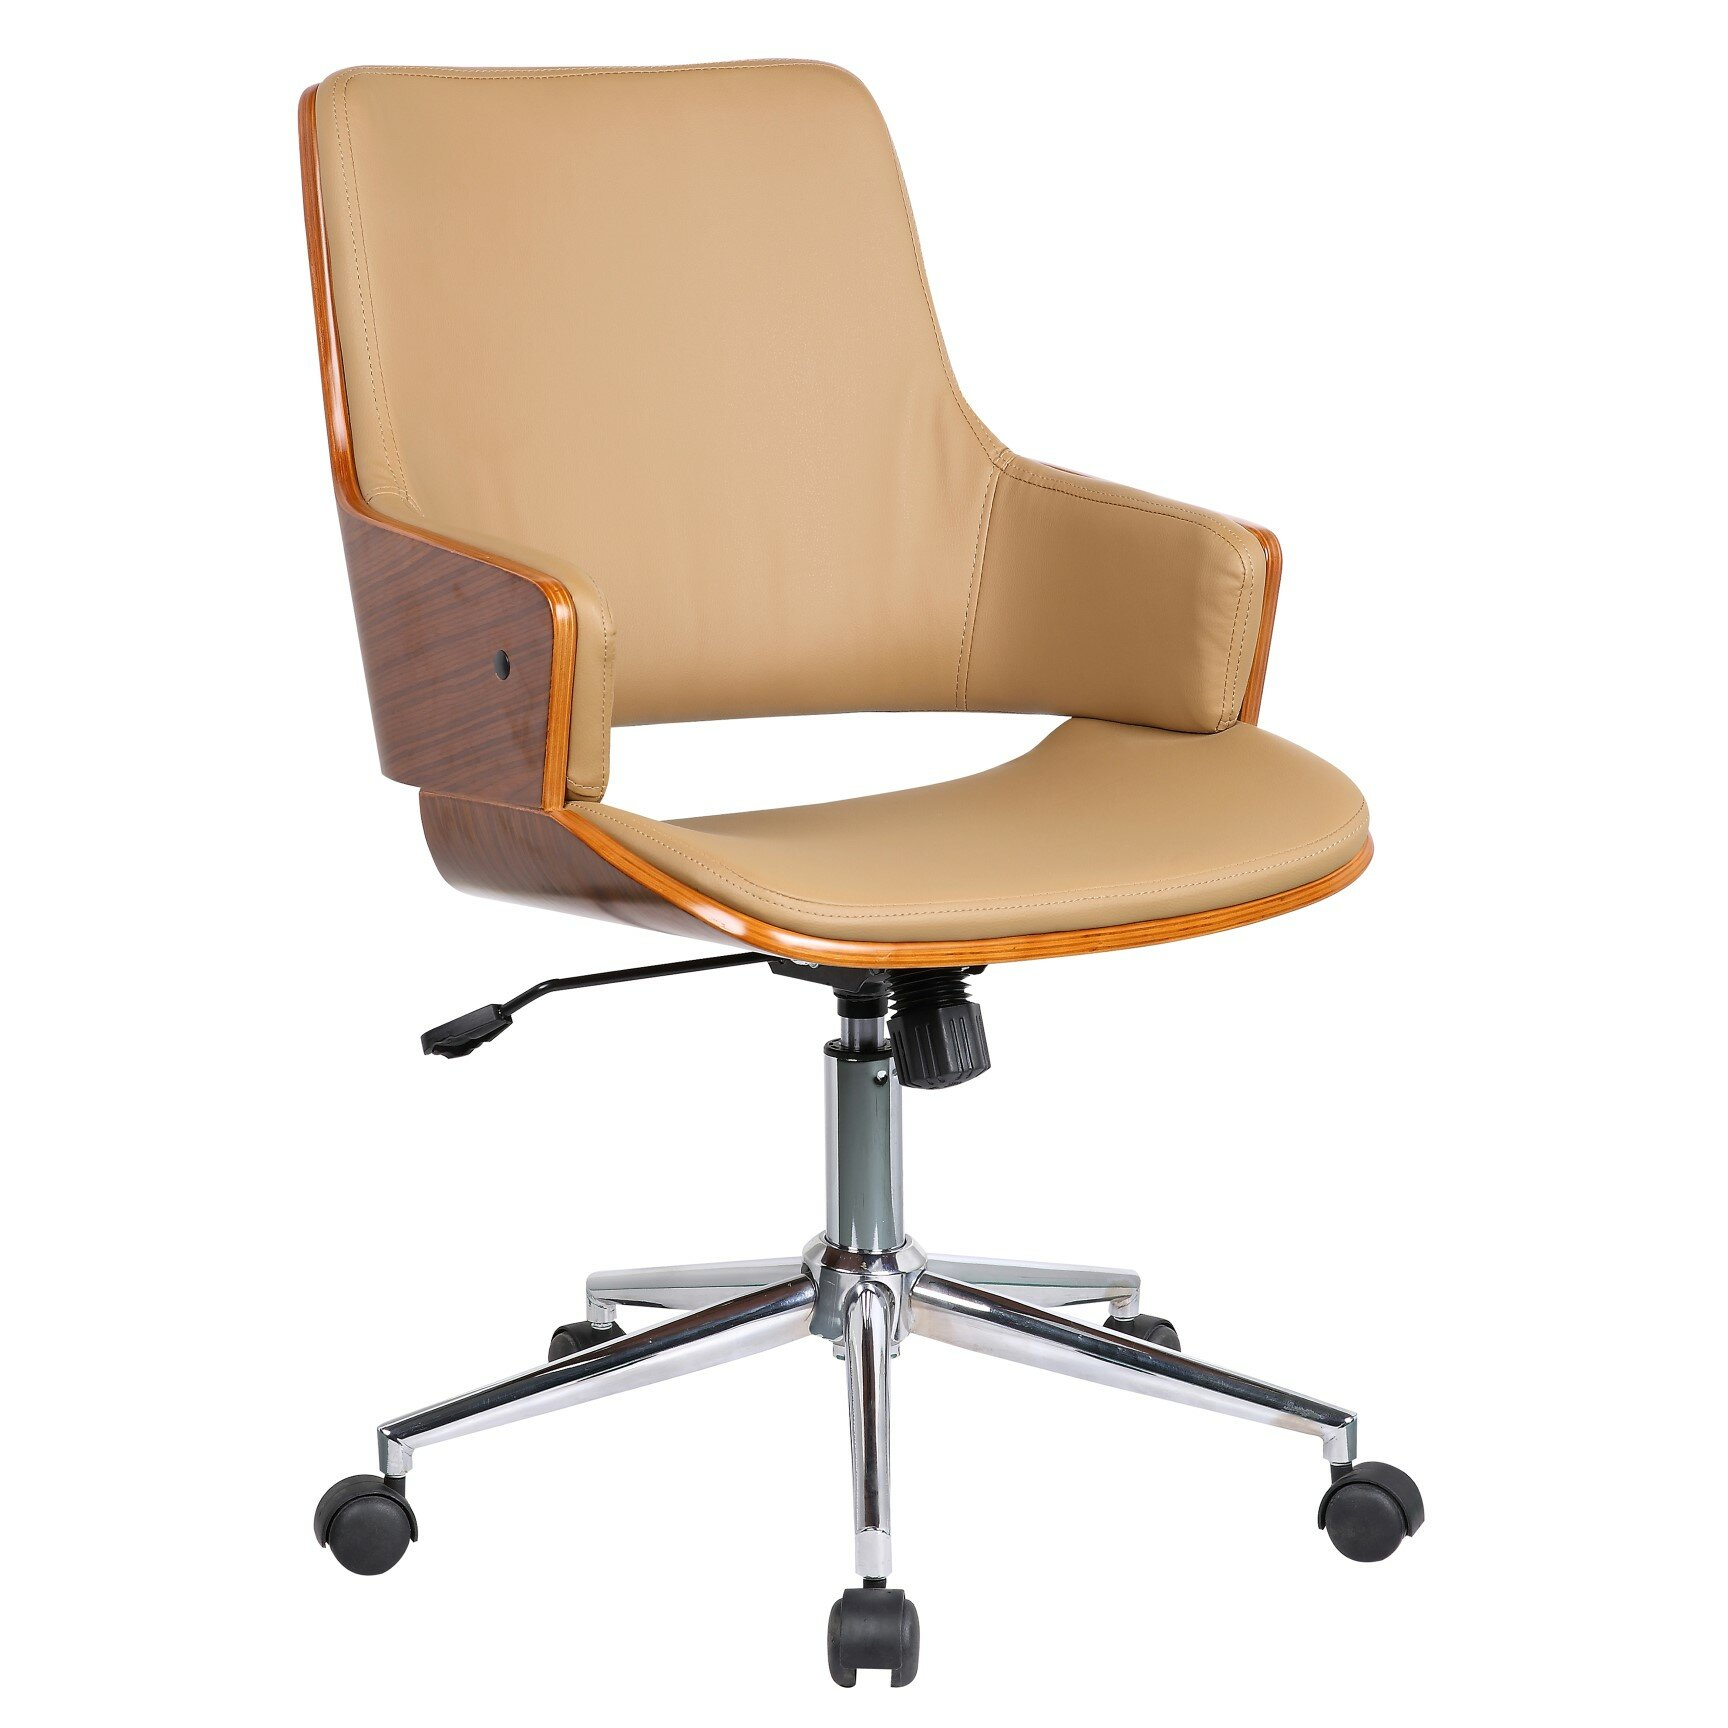 Porthos Home Solene High-Back Leather Office Chair With